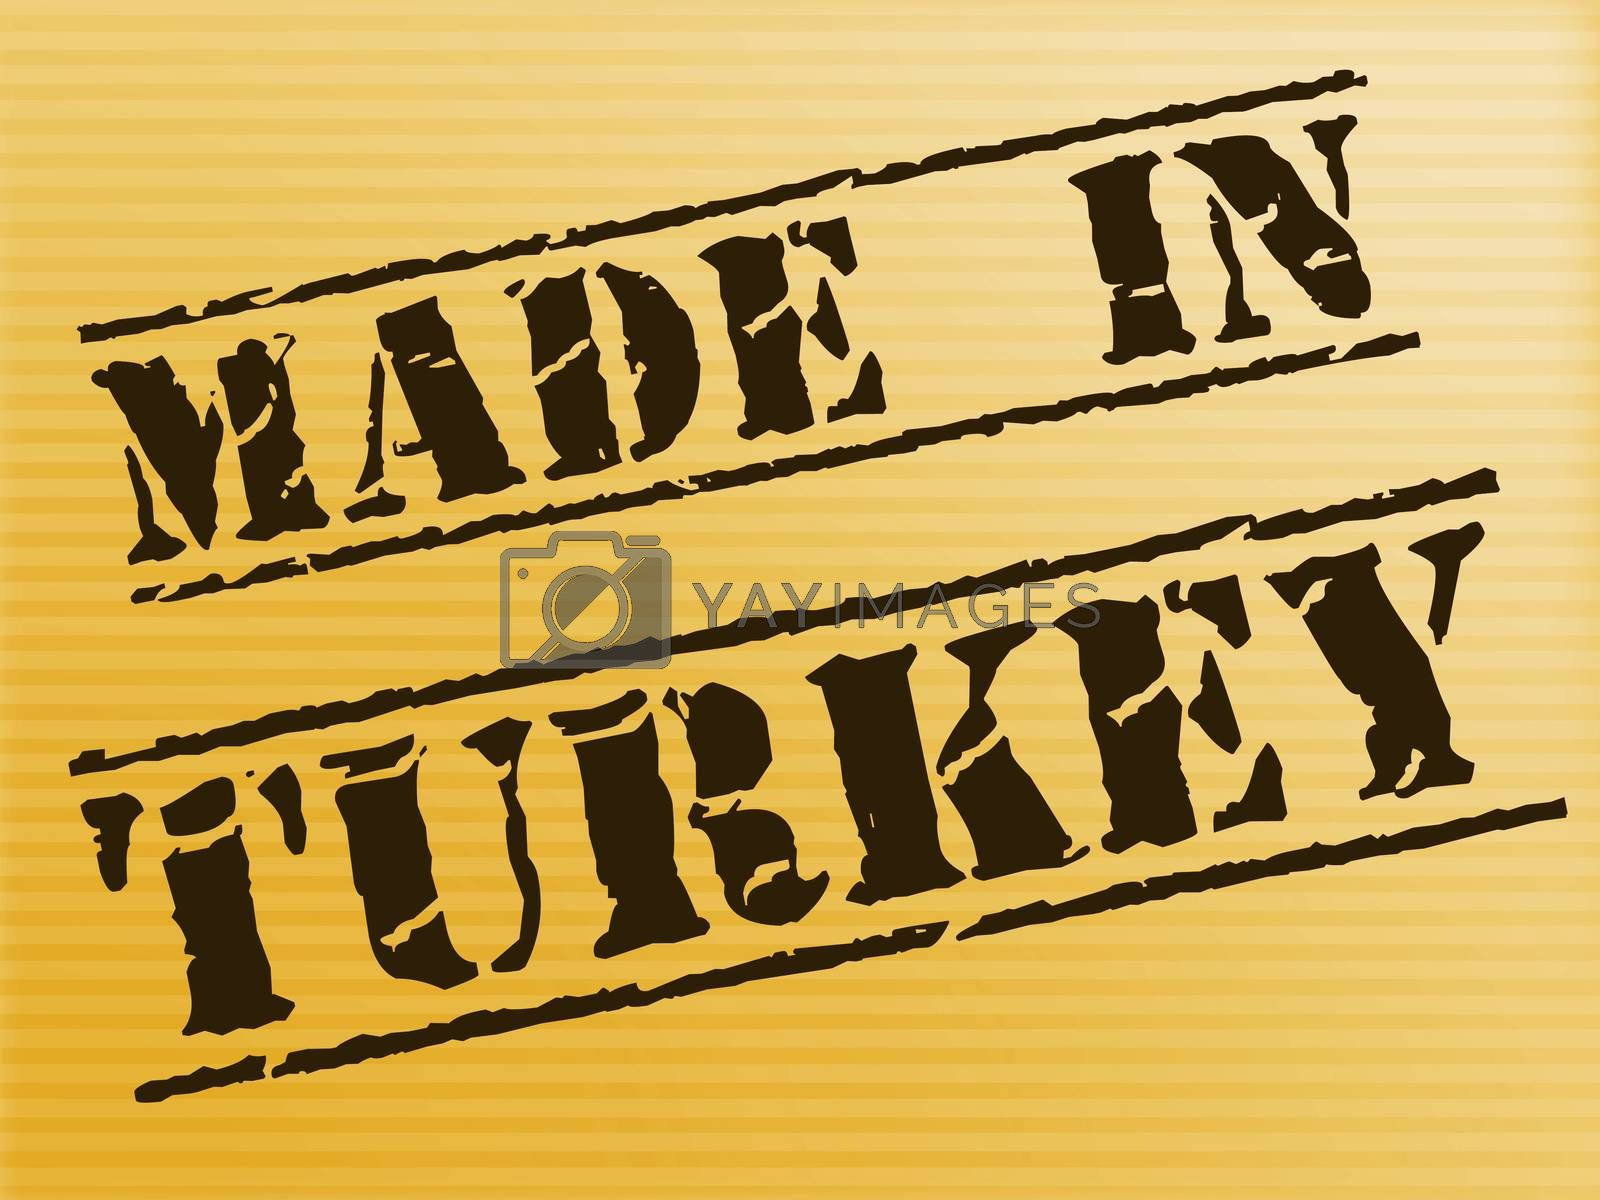 Made in Turkey stamp shows Turkish products produced or fabricated. Quality patriotic exports for international trade - 3d illustration